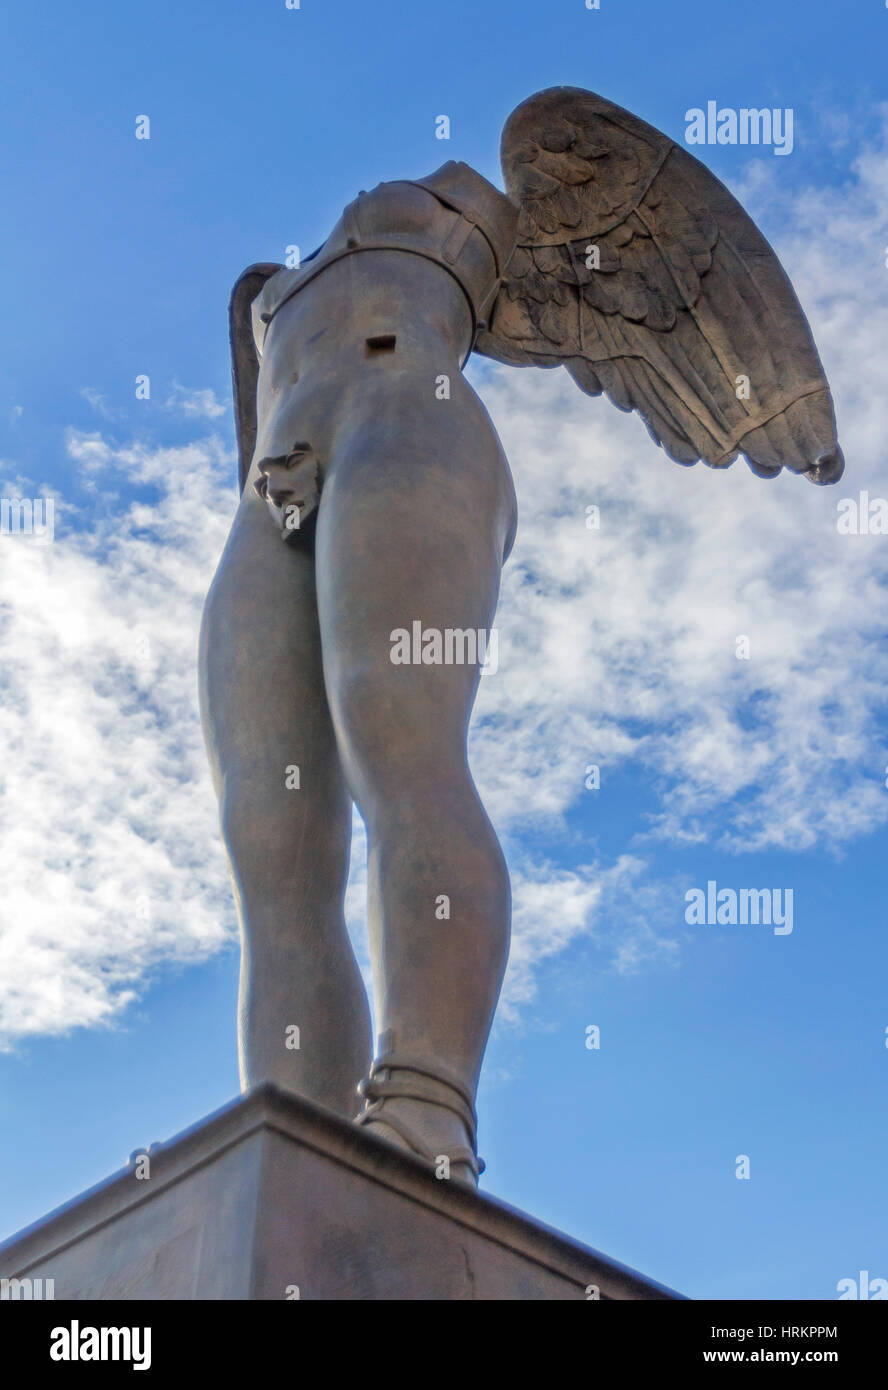 A Sculpture on display in Pompeii, Italy by Igor Mitoraj. - Stock Image